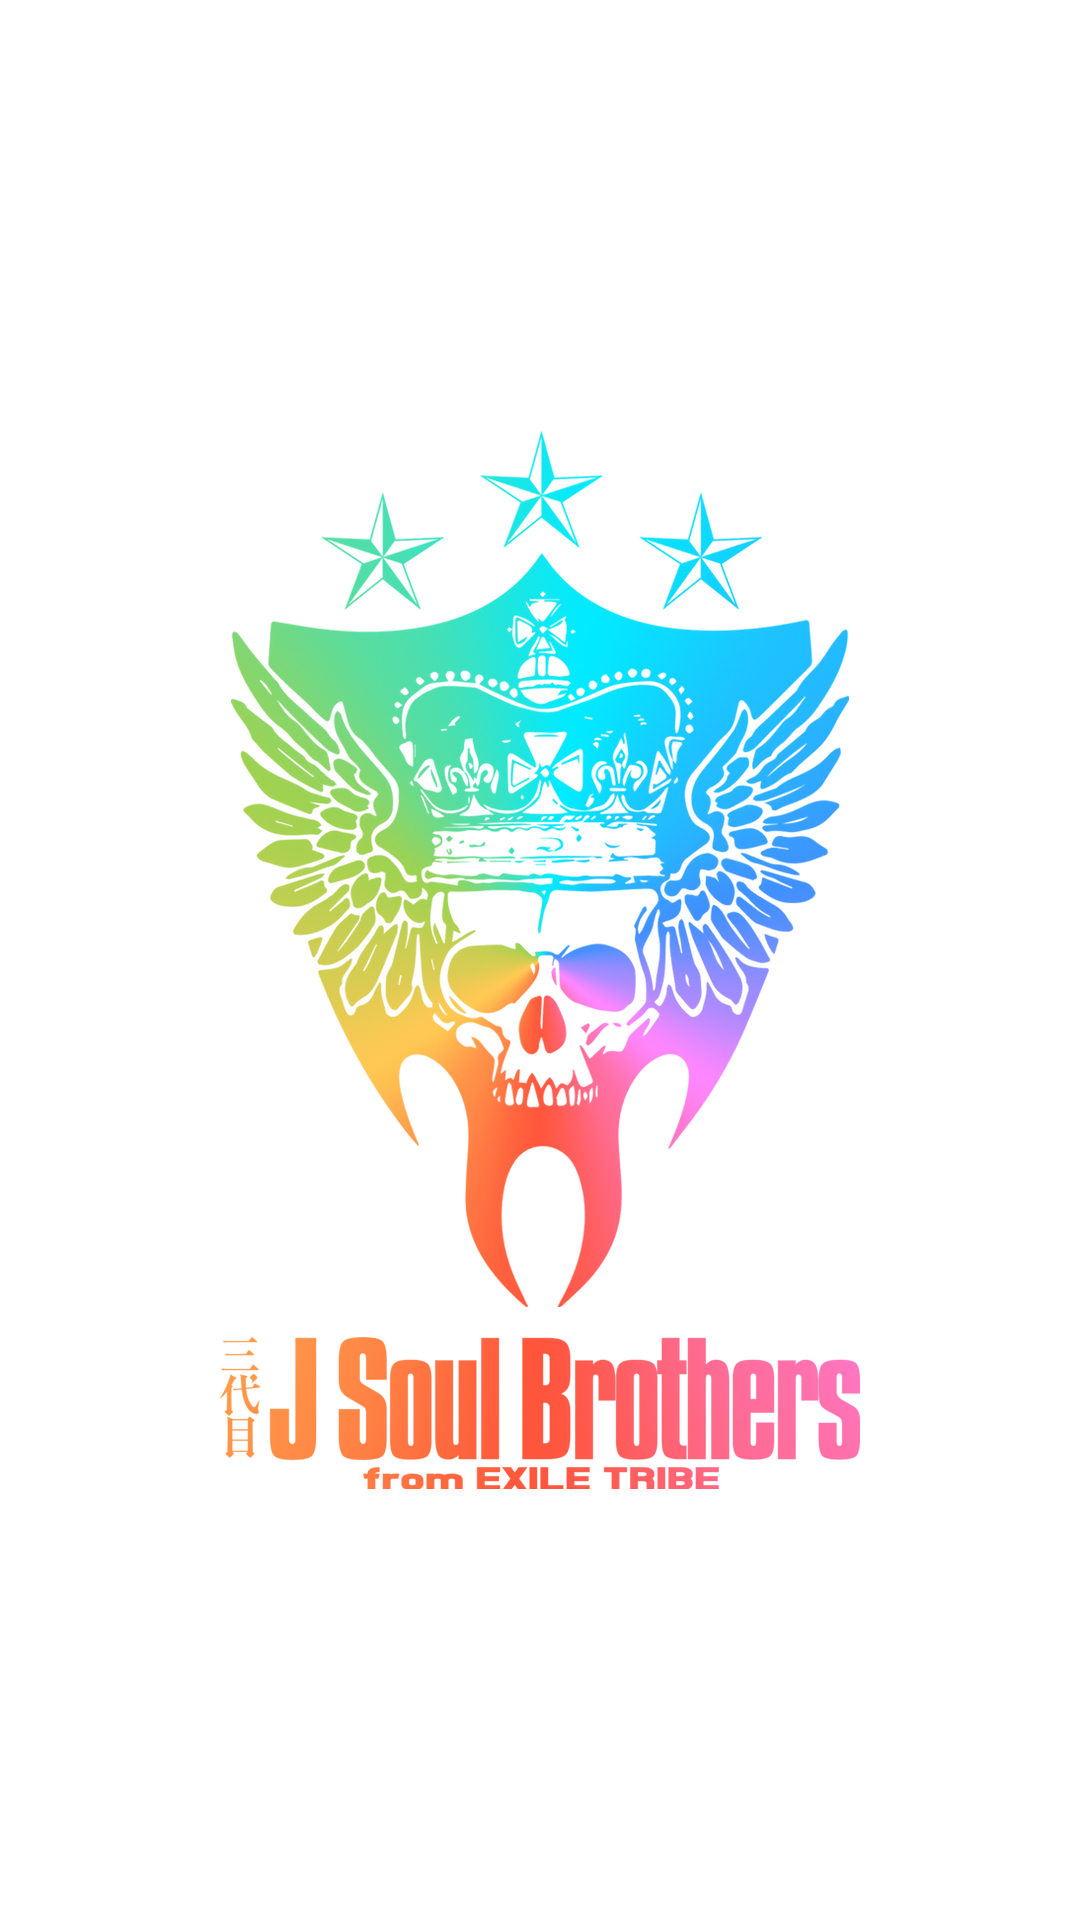 3jsb i12 - 三代目 J SOUL BROTHERSの高画質スマホ壁紙40枚 [iPhone&Androidに対応]